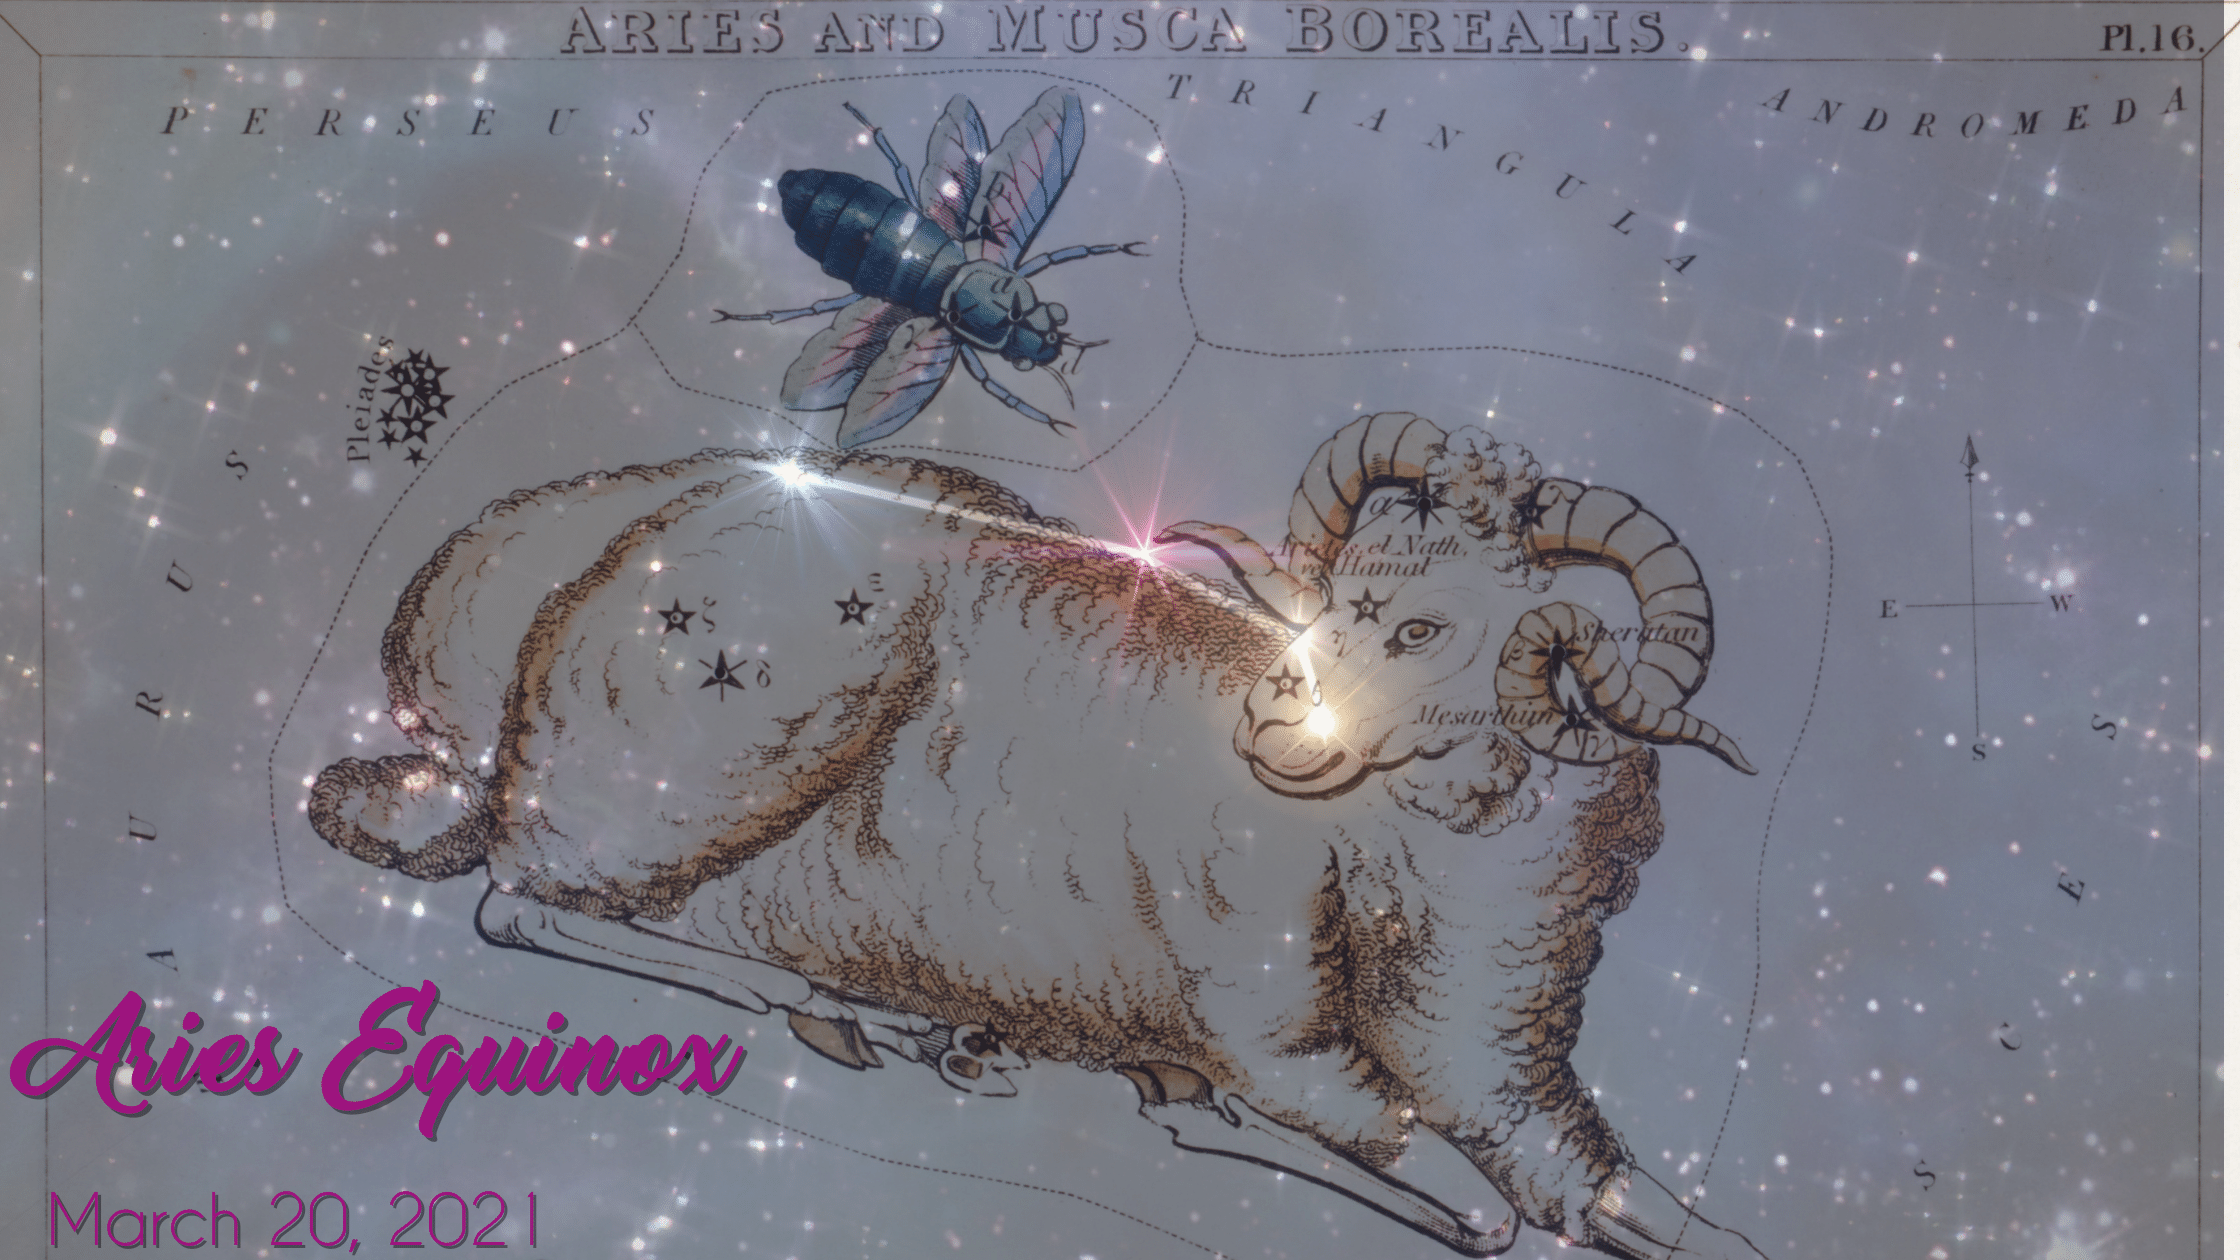 Aries Equinox – March 20, 2021